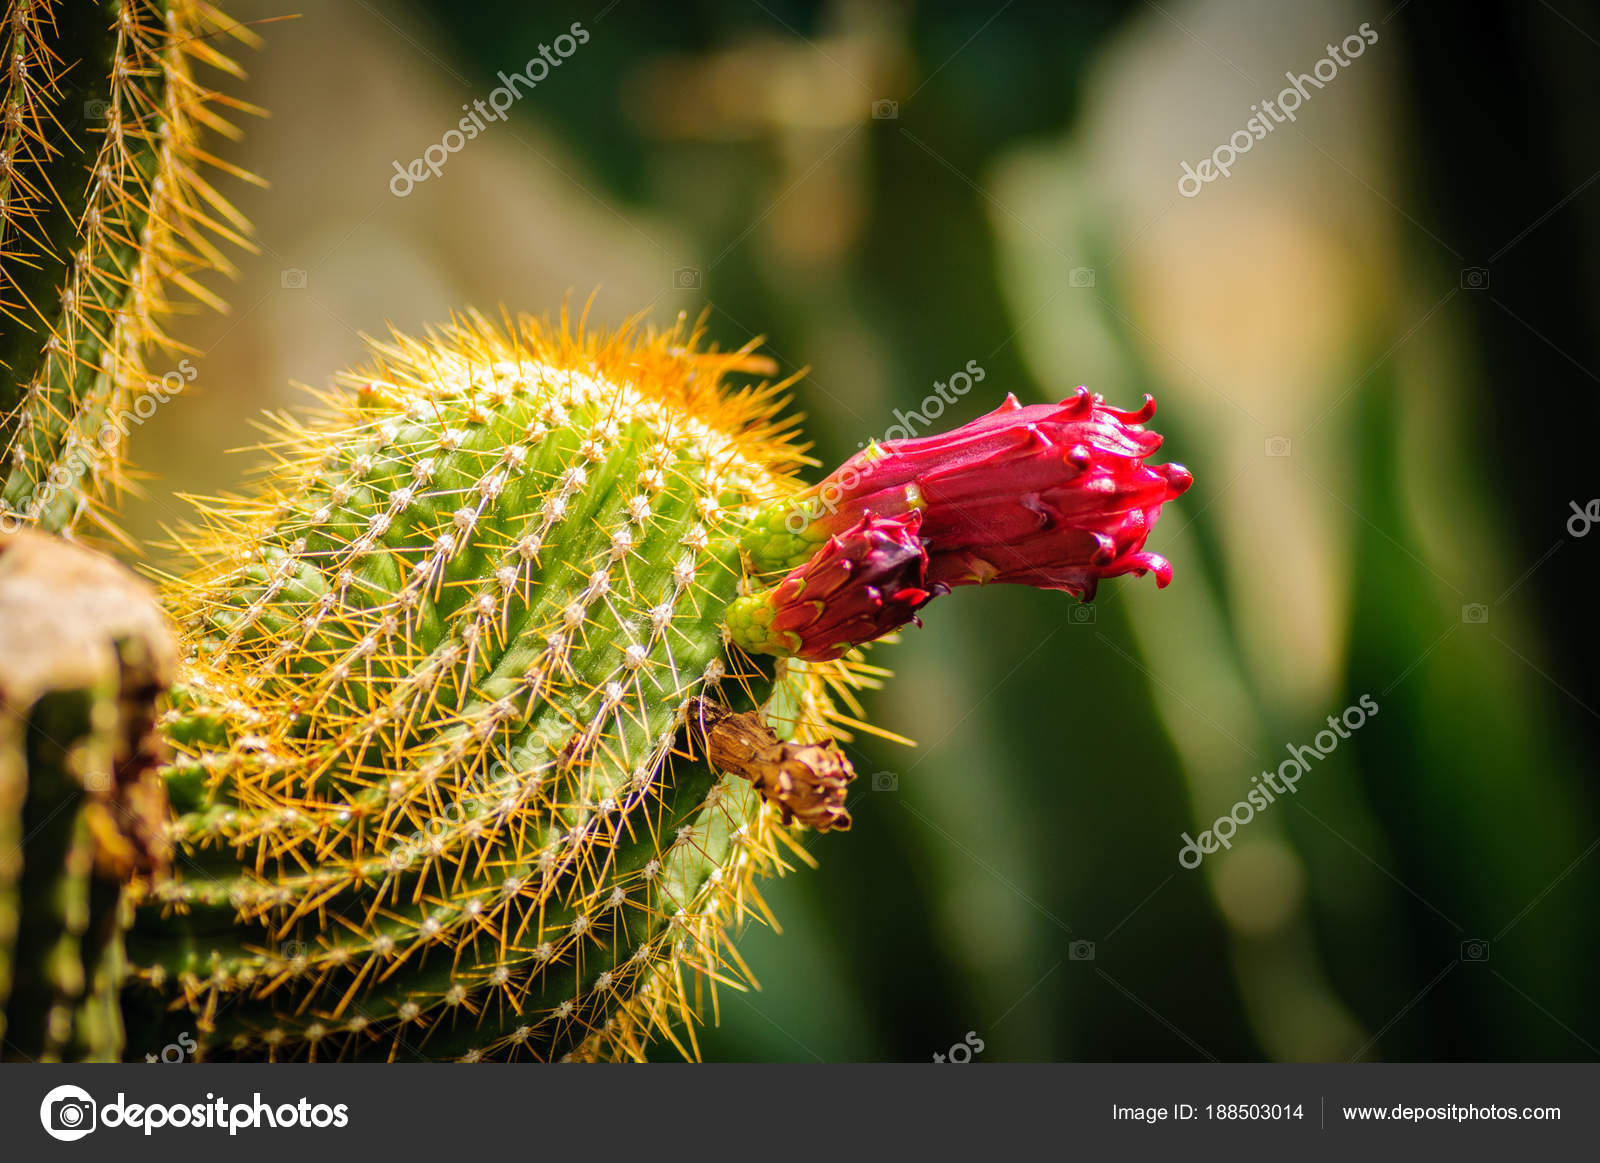 Closeup Of A Beautiful Pink Tender Cactus Flower And Green Thorny